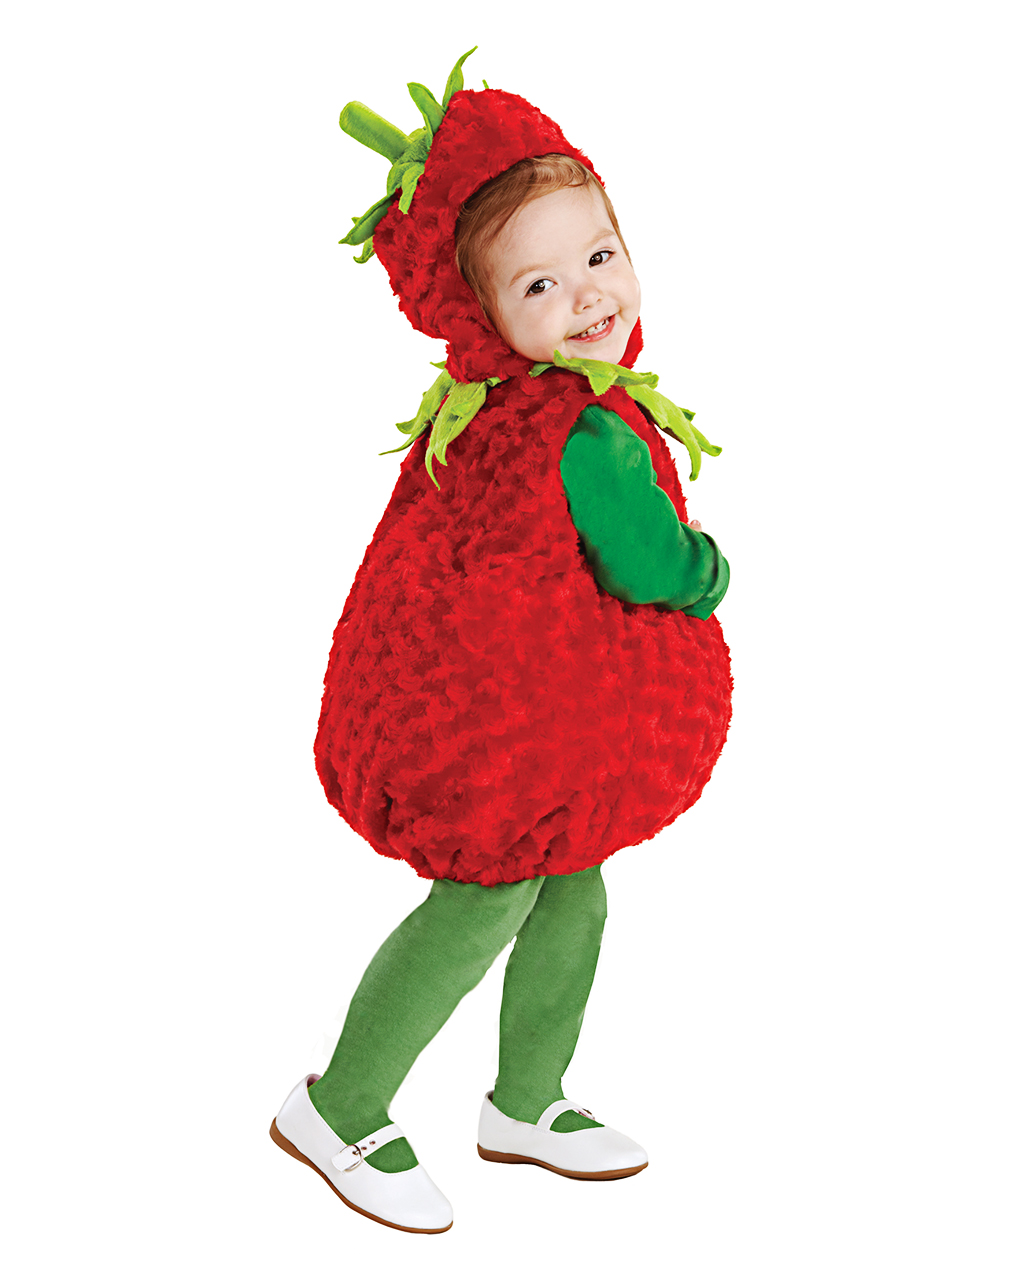 Sugar Sweet Strawberry Baby Costume For Carnival Karneval Universe